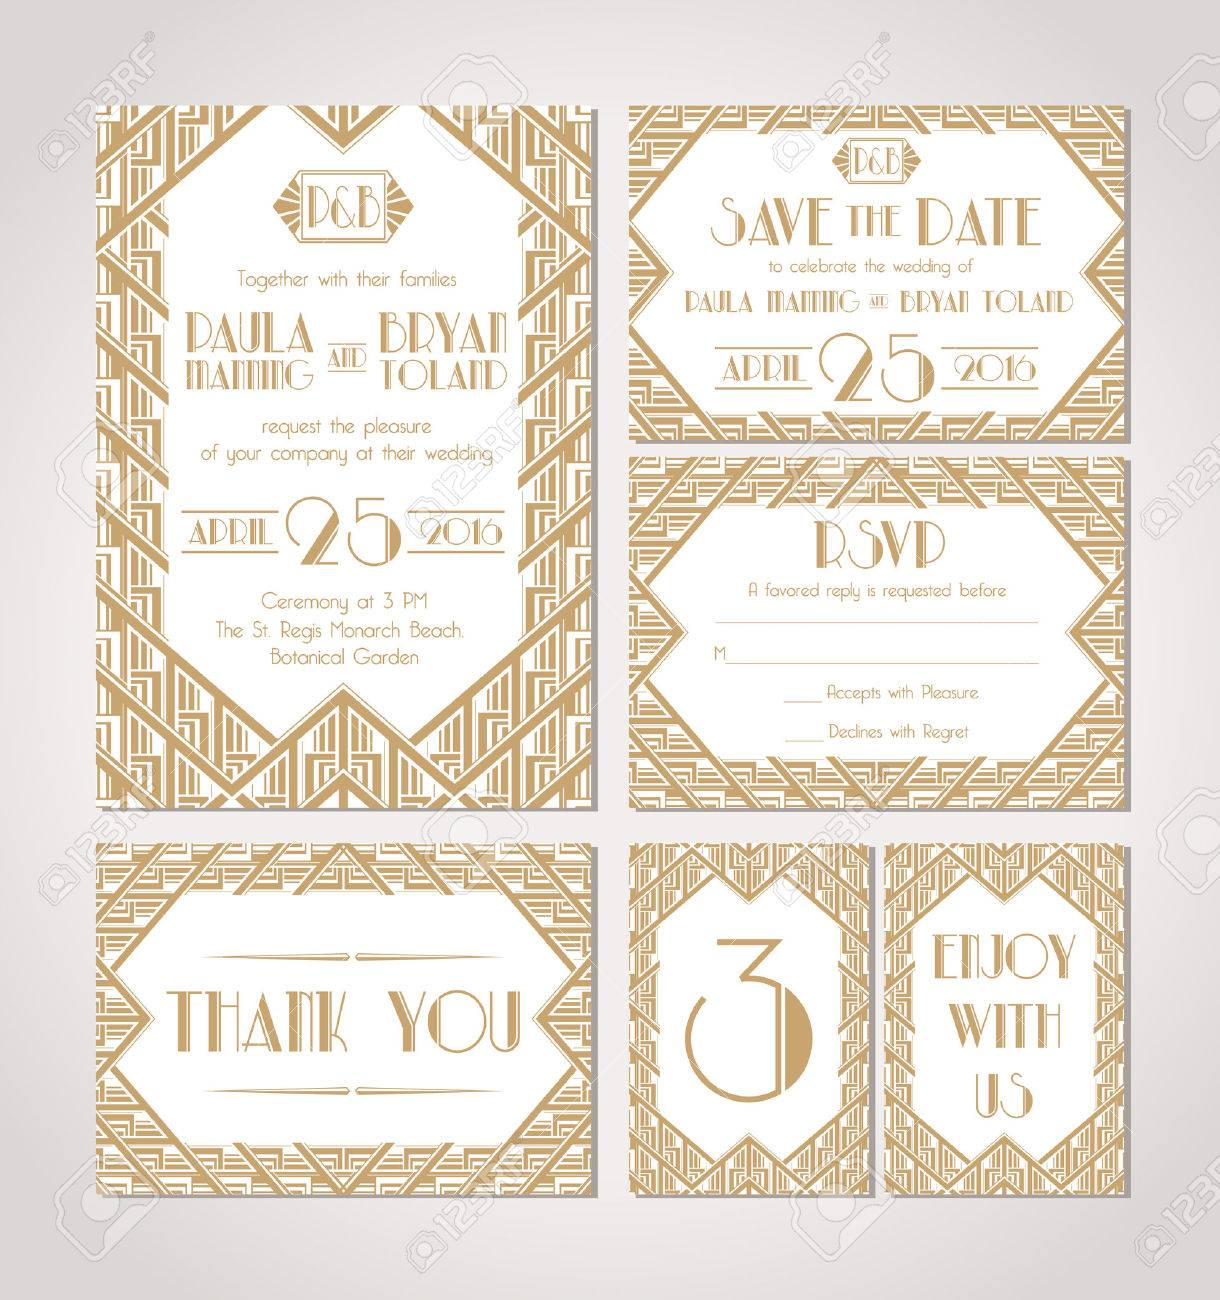 Art Deco Wedding Invitations.Art Deco Wedding Invitation Template Save The Date